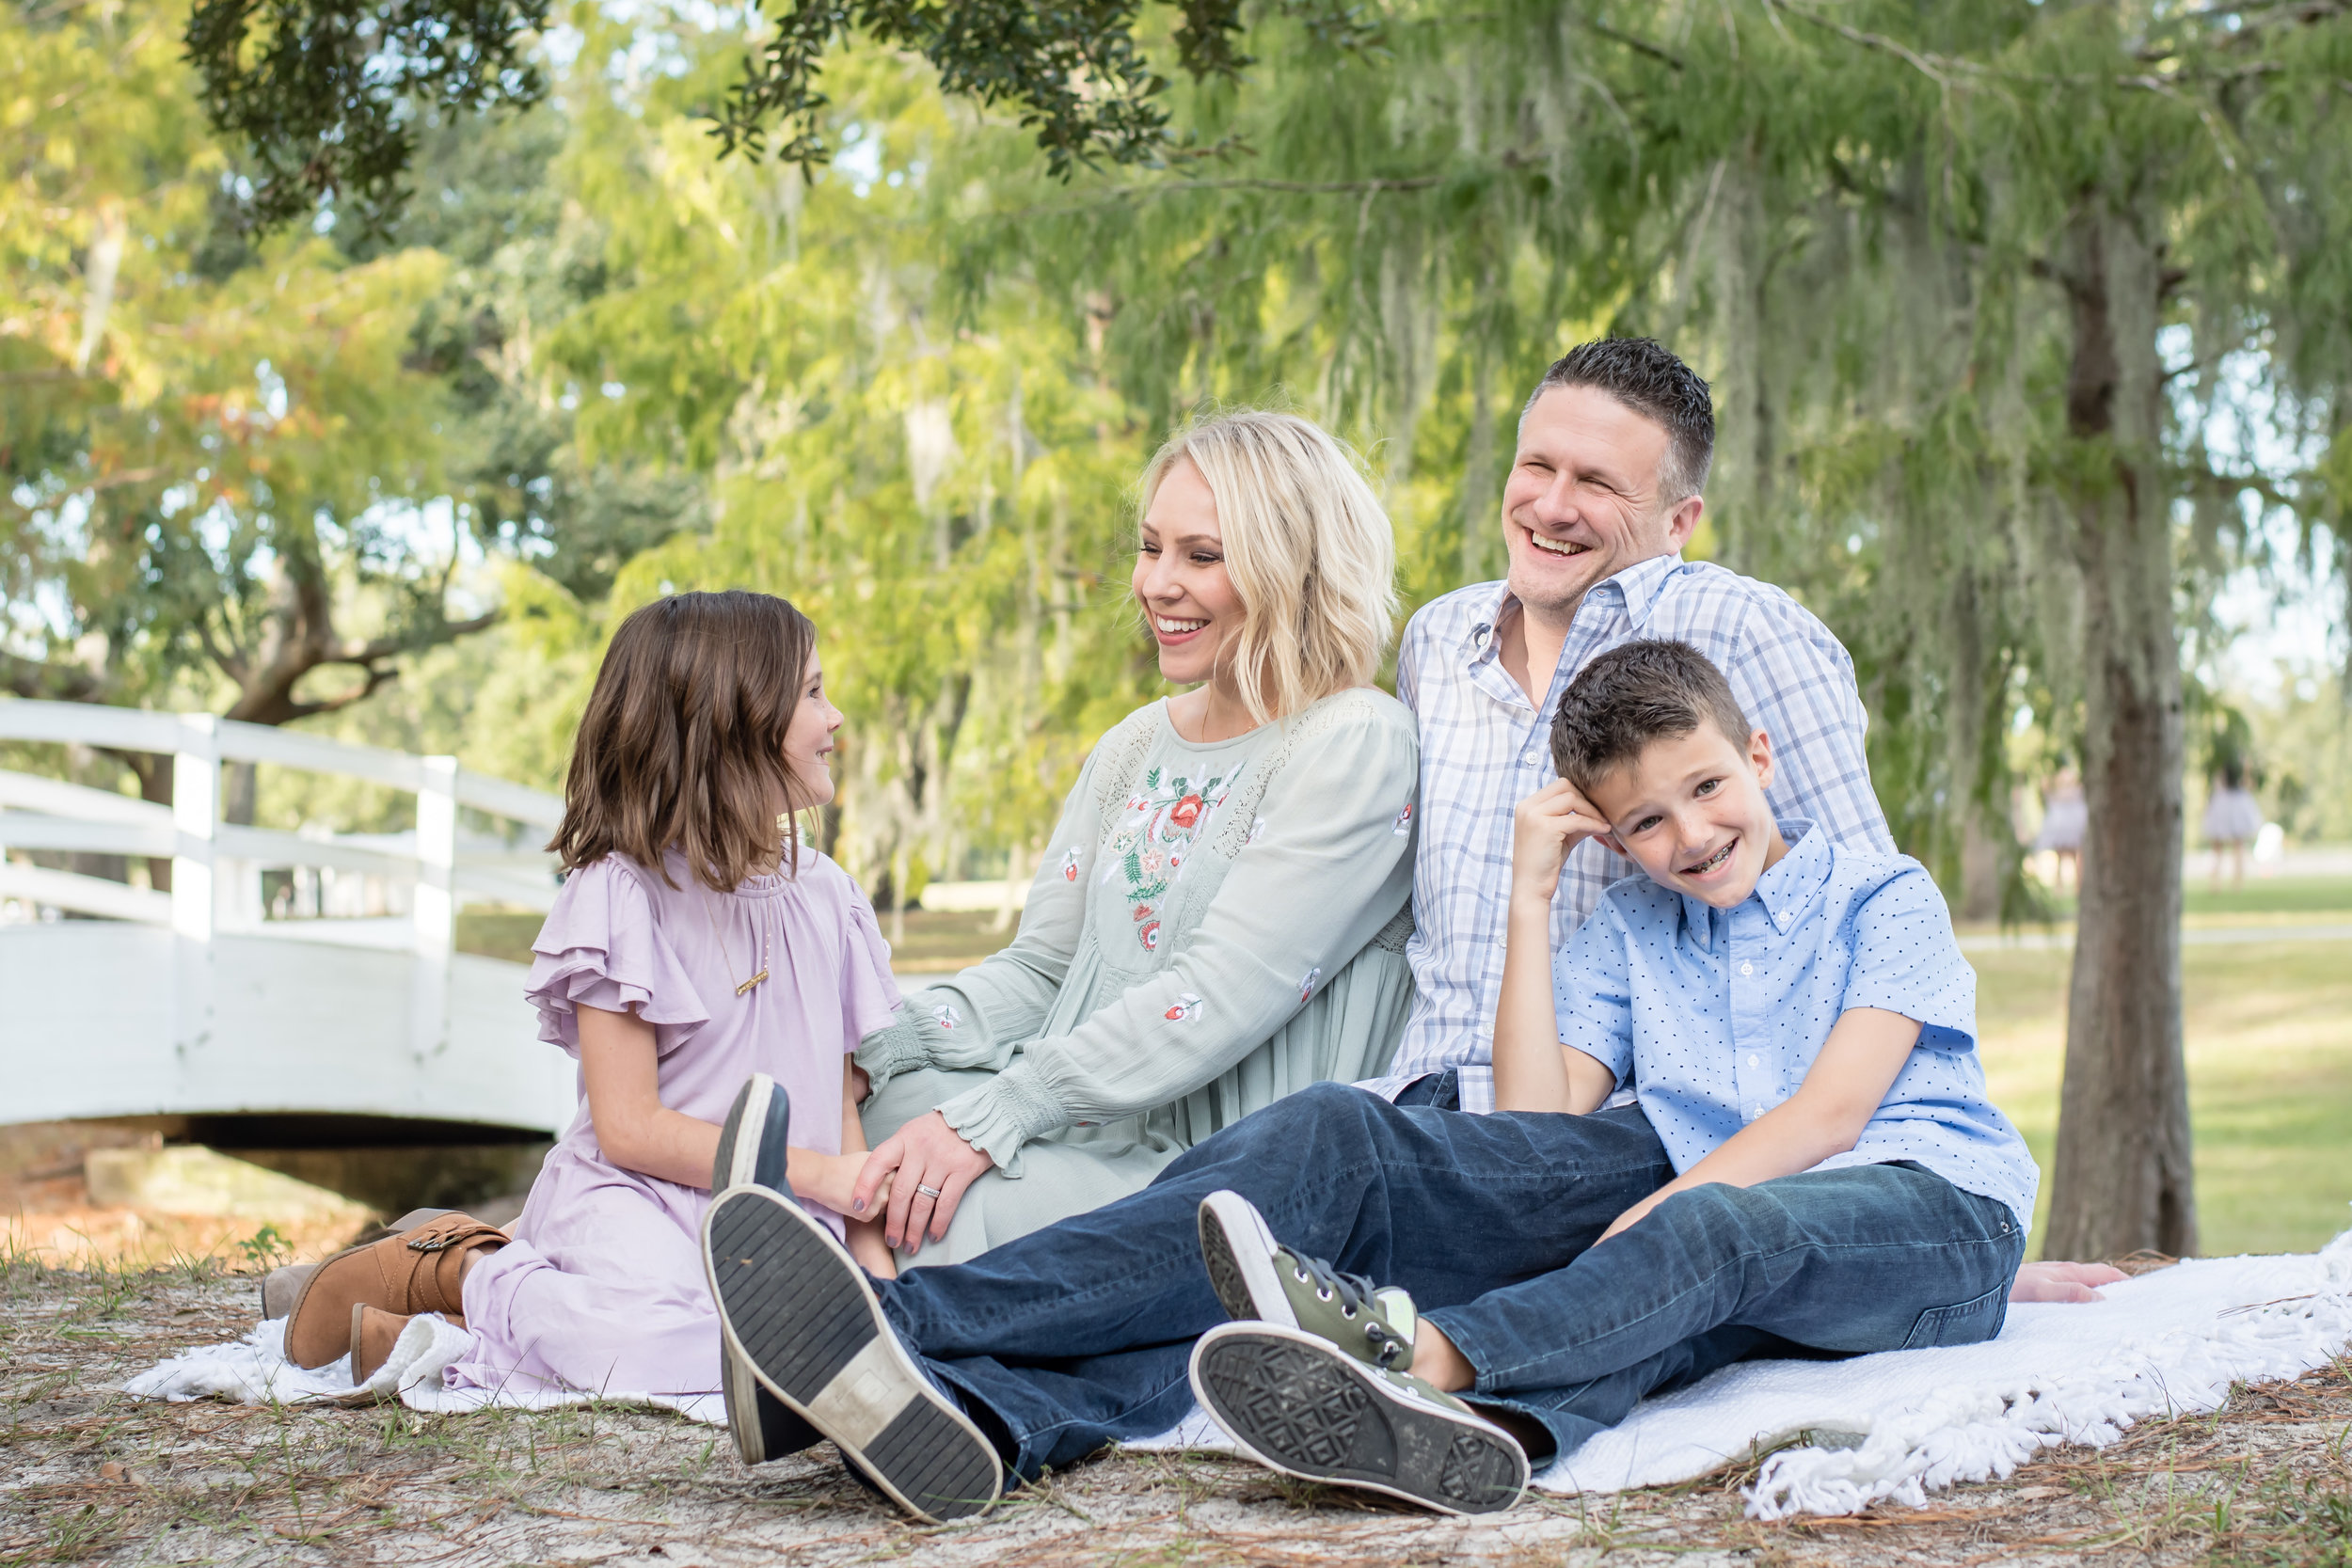 cypress-grove-park-family-session-orlando-photographer-yanitza-ninett-19.jpg